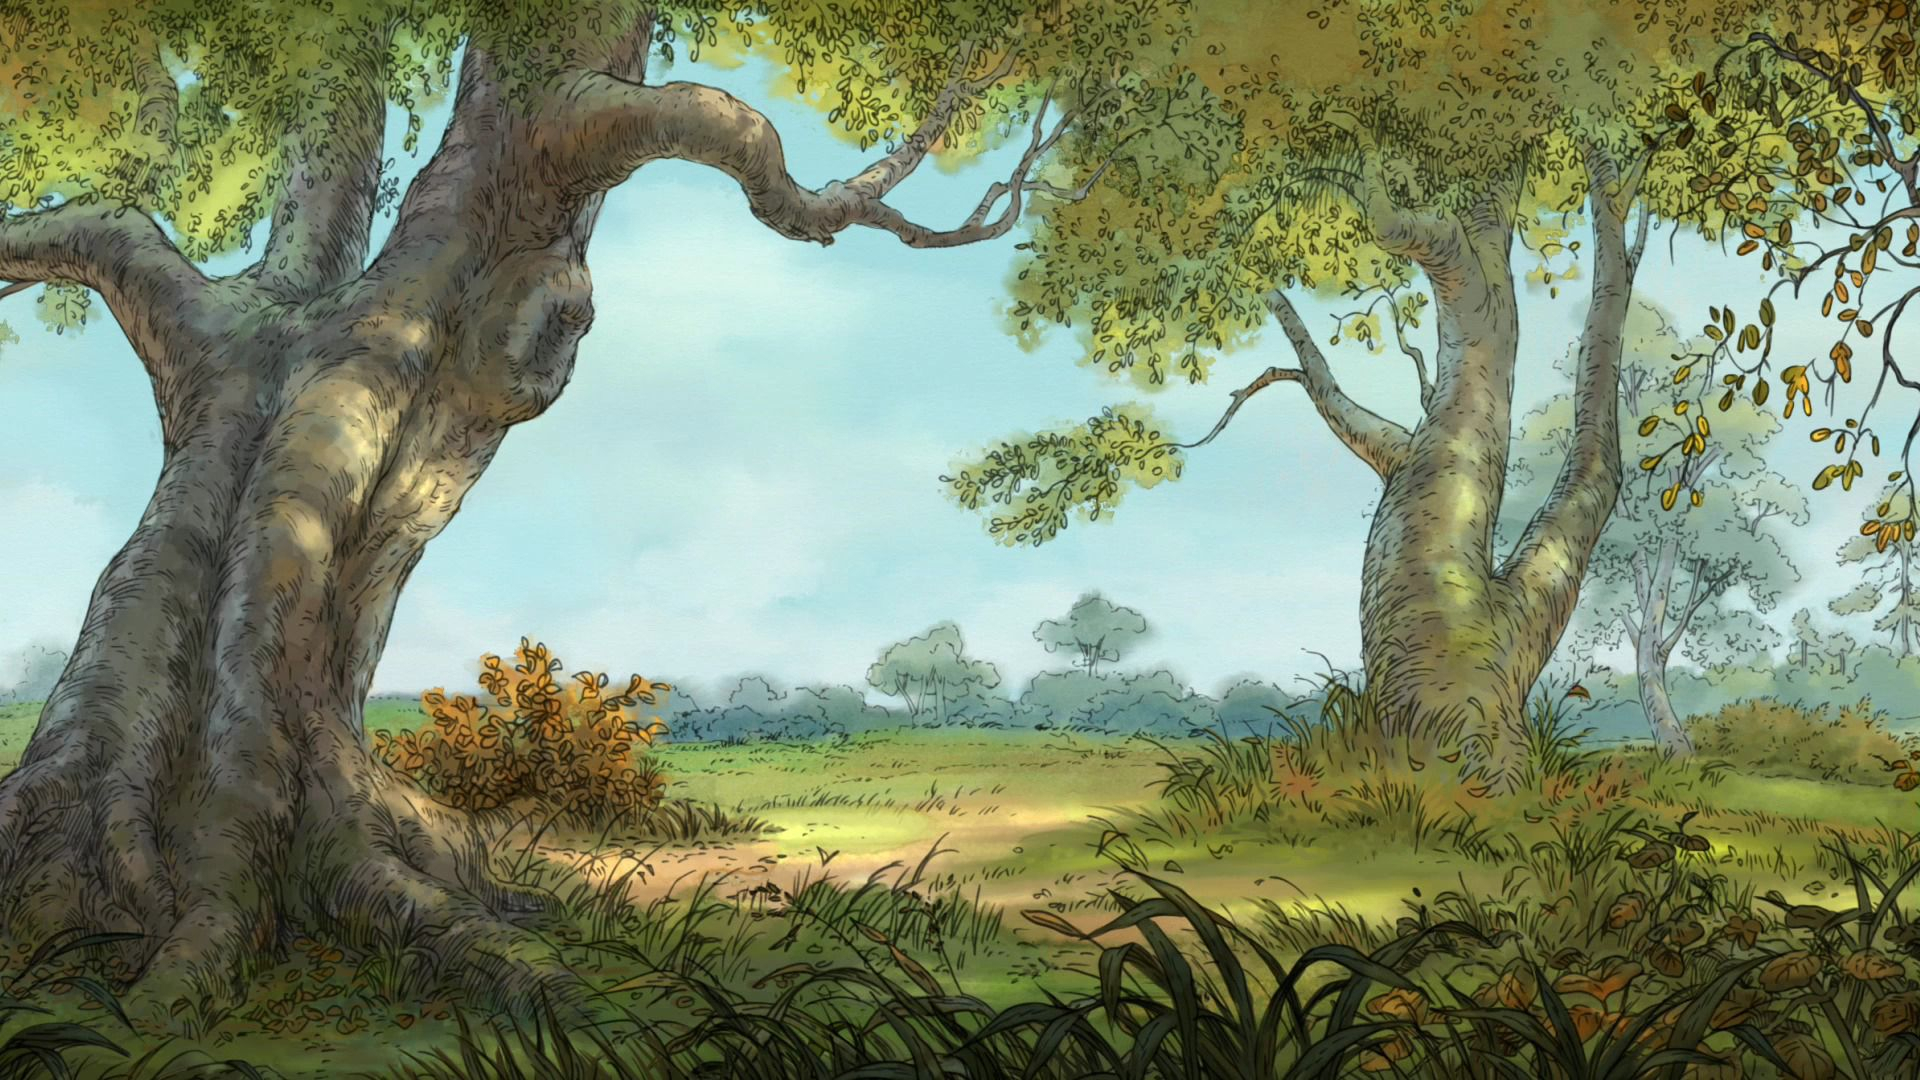 winnie-the-pooh wallpapers | desktop wallpapers - page 2 | baby room